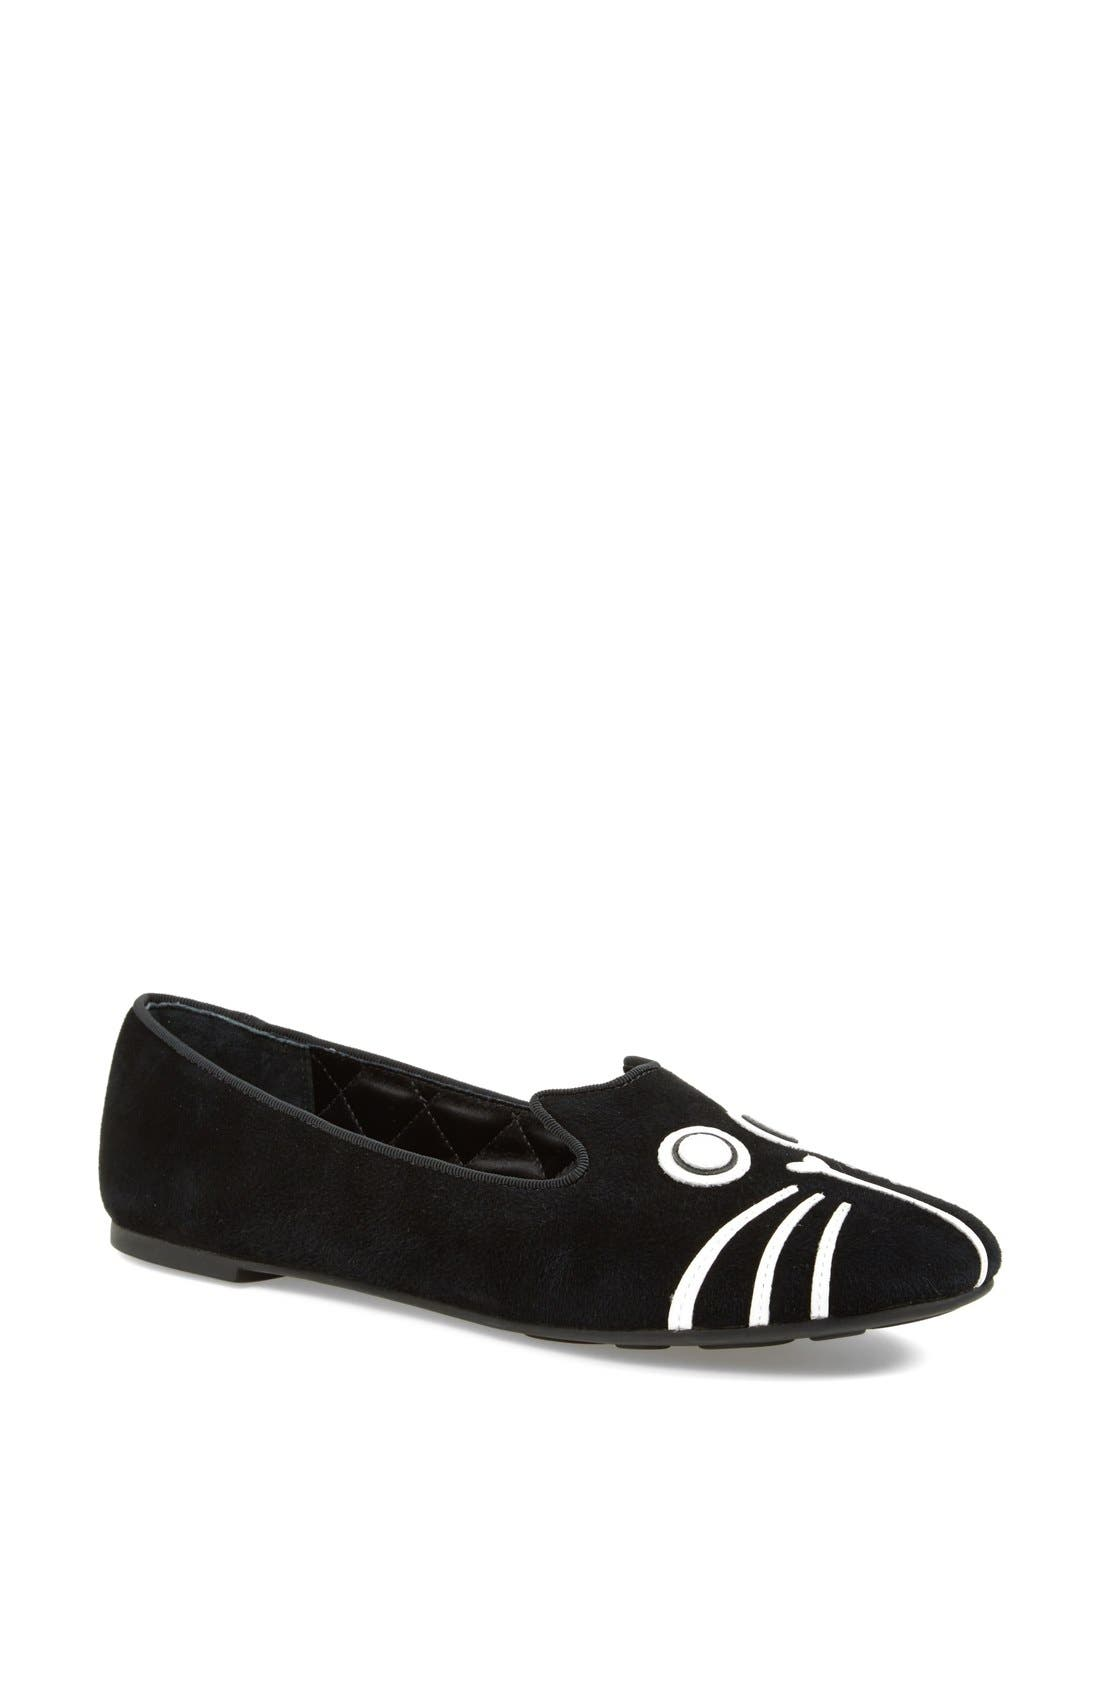 Main Image - MARC BY MARC JACOBS 'Rue' Suede Smoking Flat